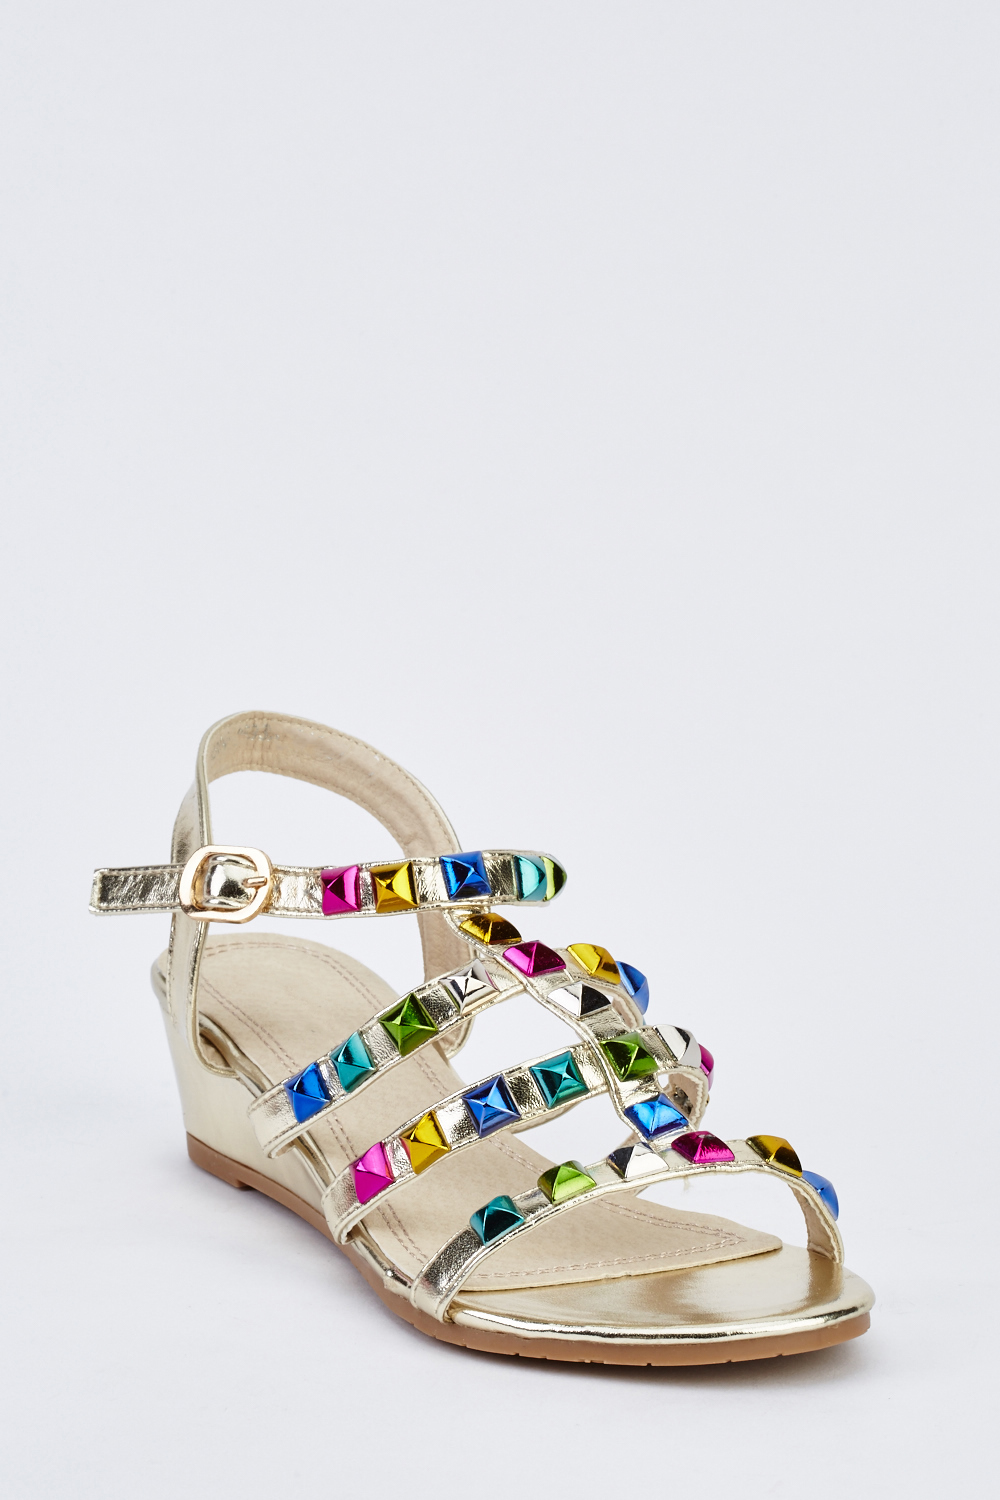 5c9cc2d5f05 Studded Low Wedge Gladiator Sandals - Just £5